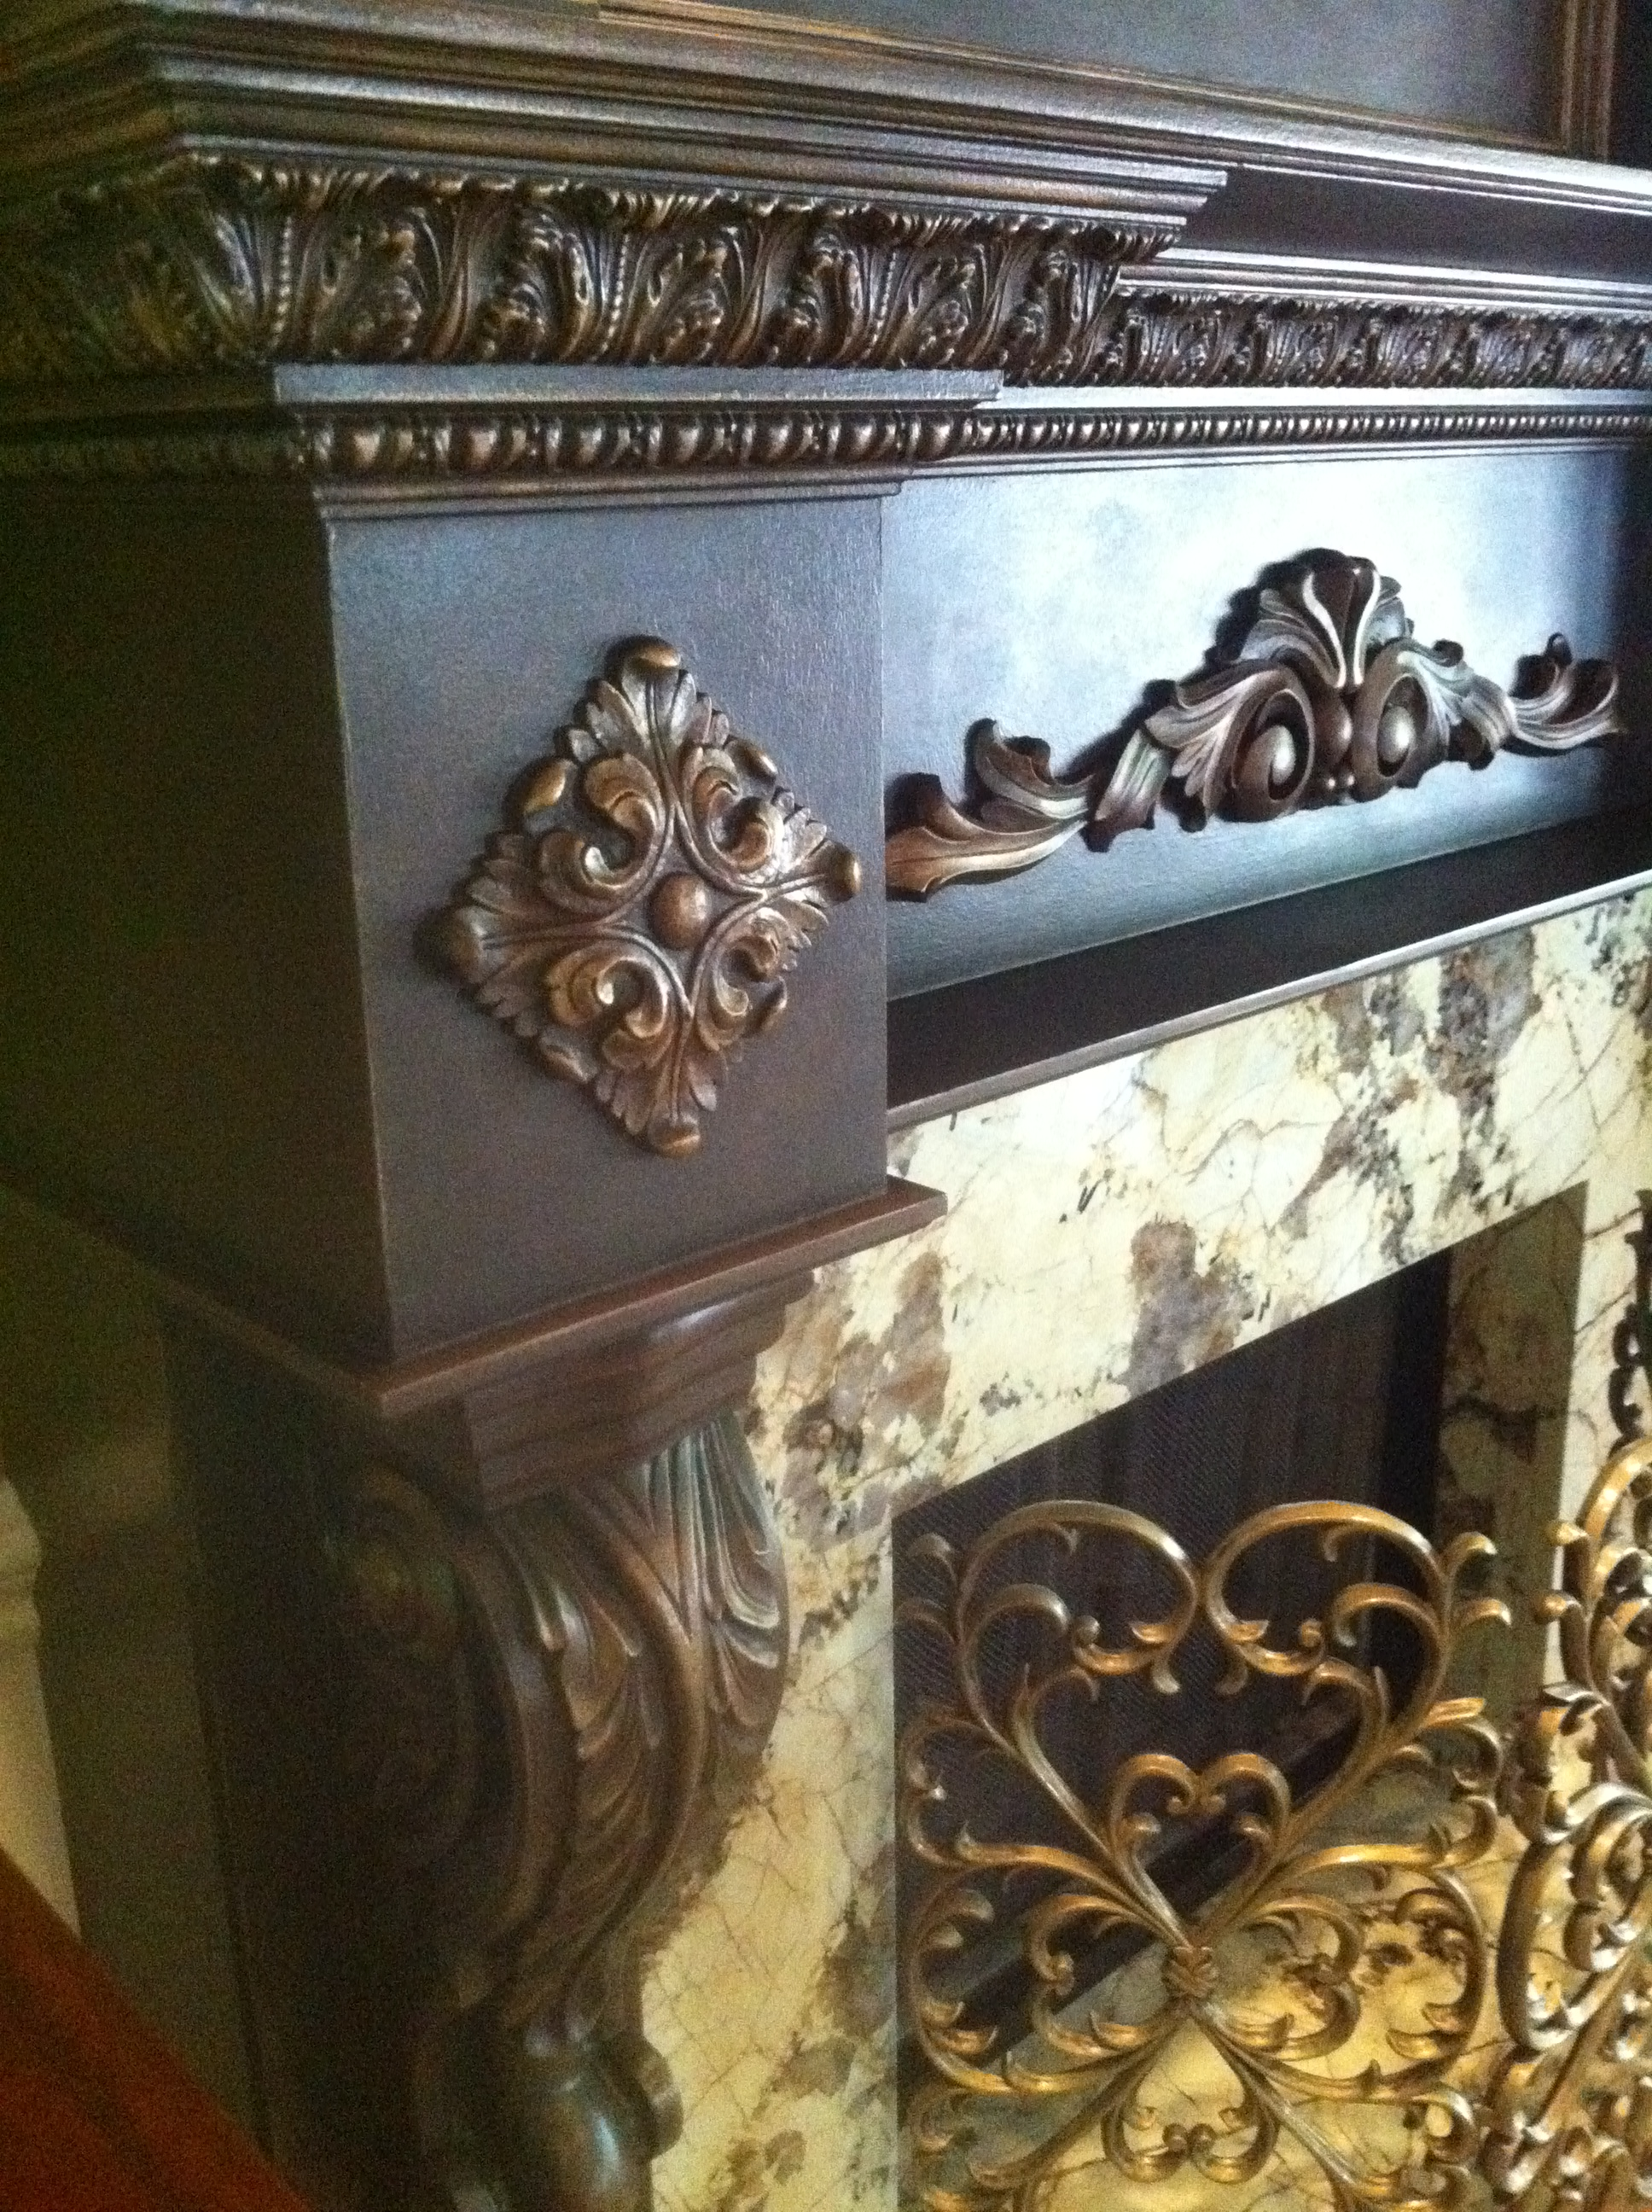 Oil Rubbed Bronze Mantel